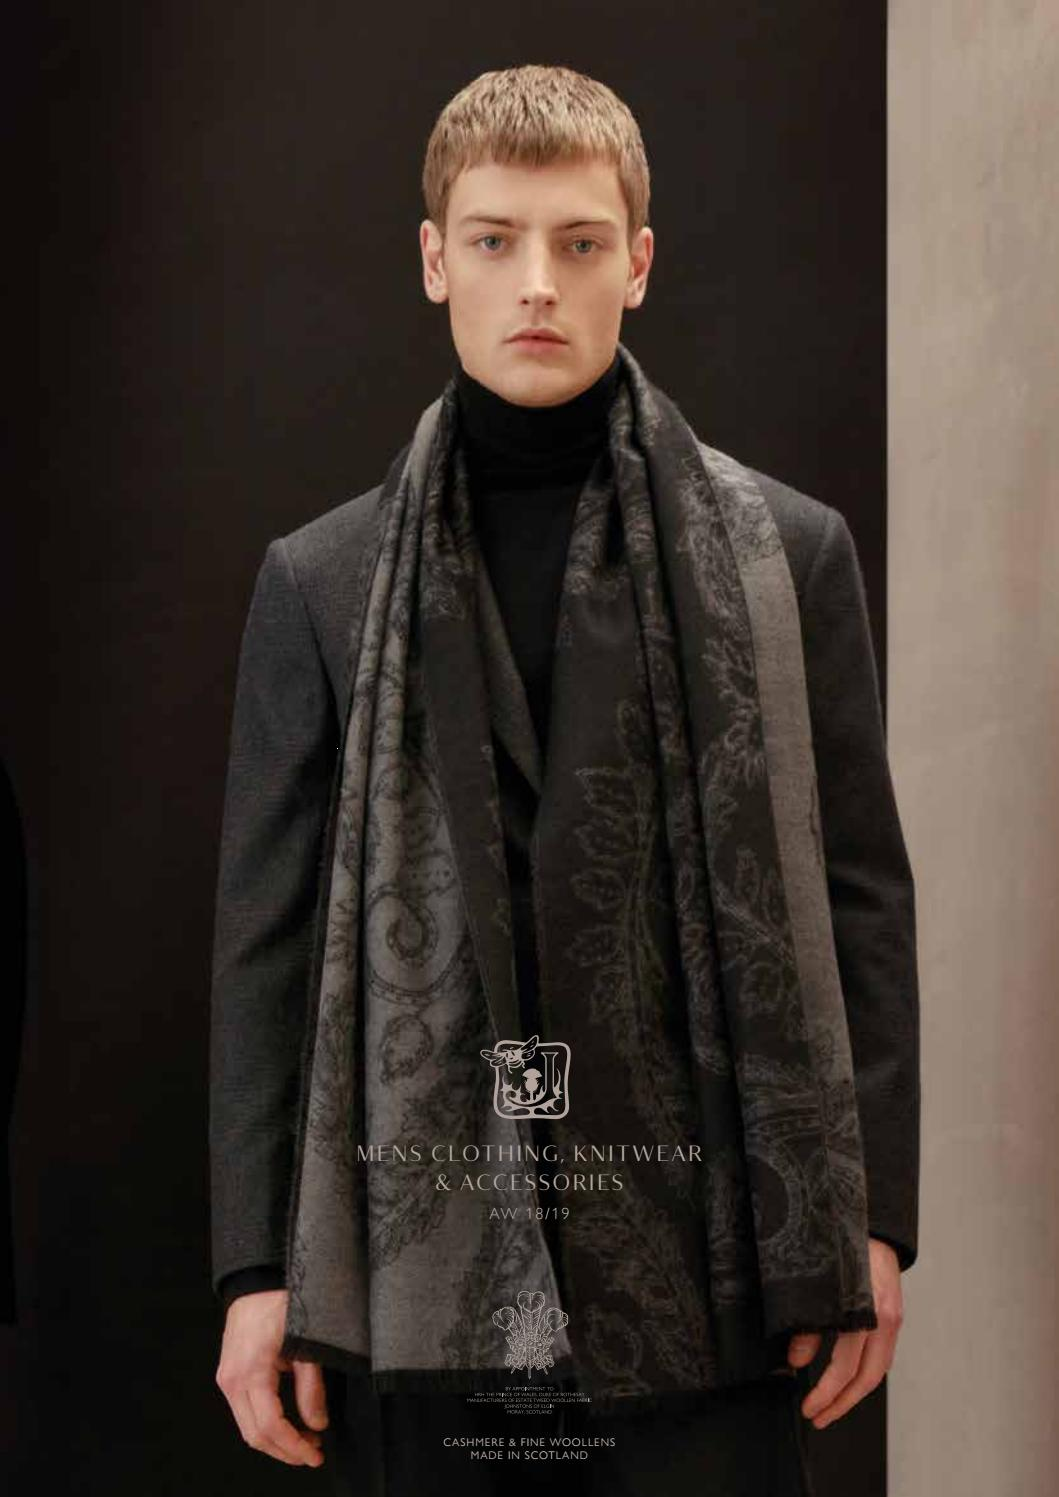 cf4b4e91d3035 Johnstons Of Elgin AW18 Menswear Sales Tool by johnstonscashmere0 - issuu